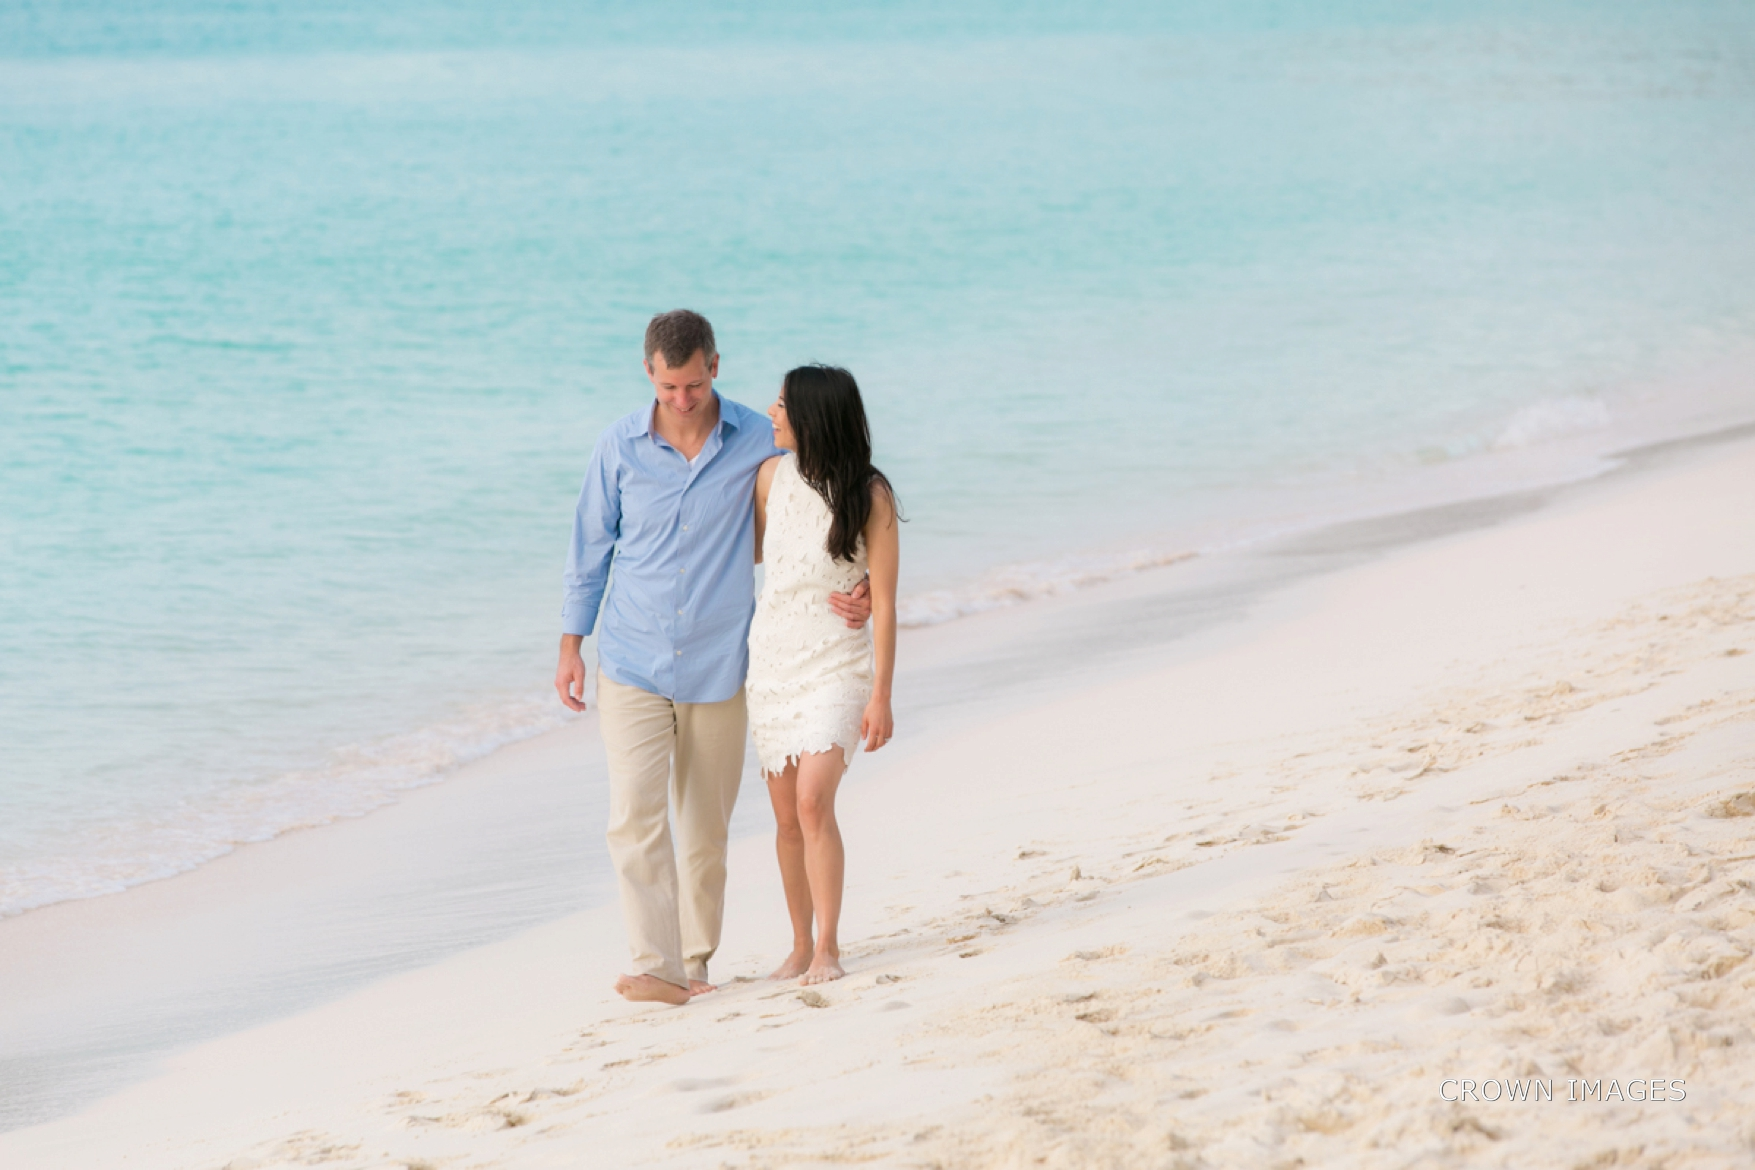 engagement_photos_virgin_islands_crown_images_0633.jpg